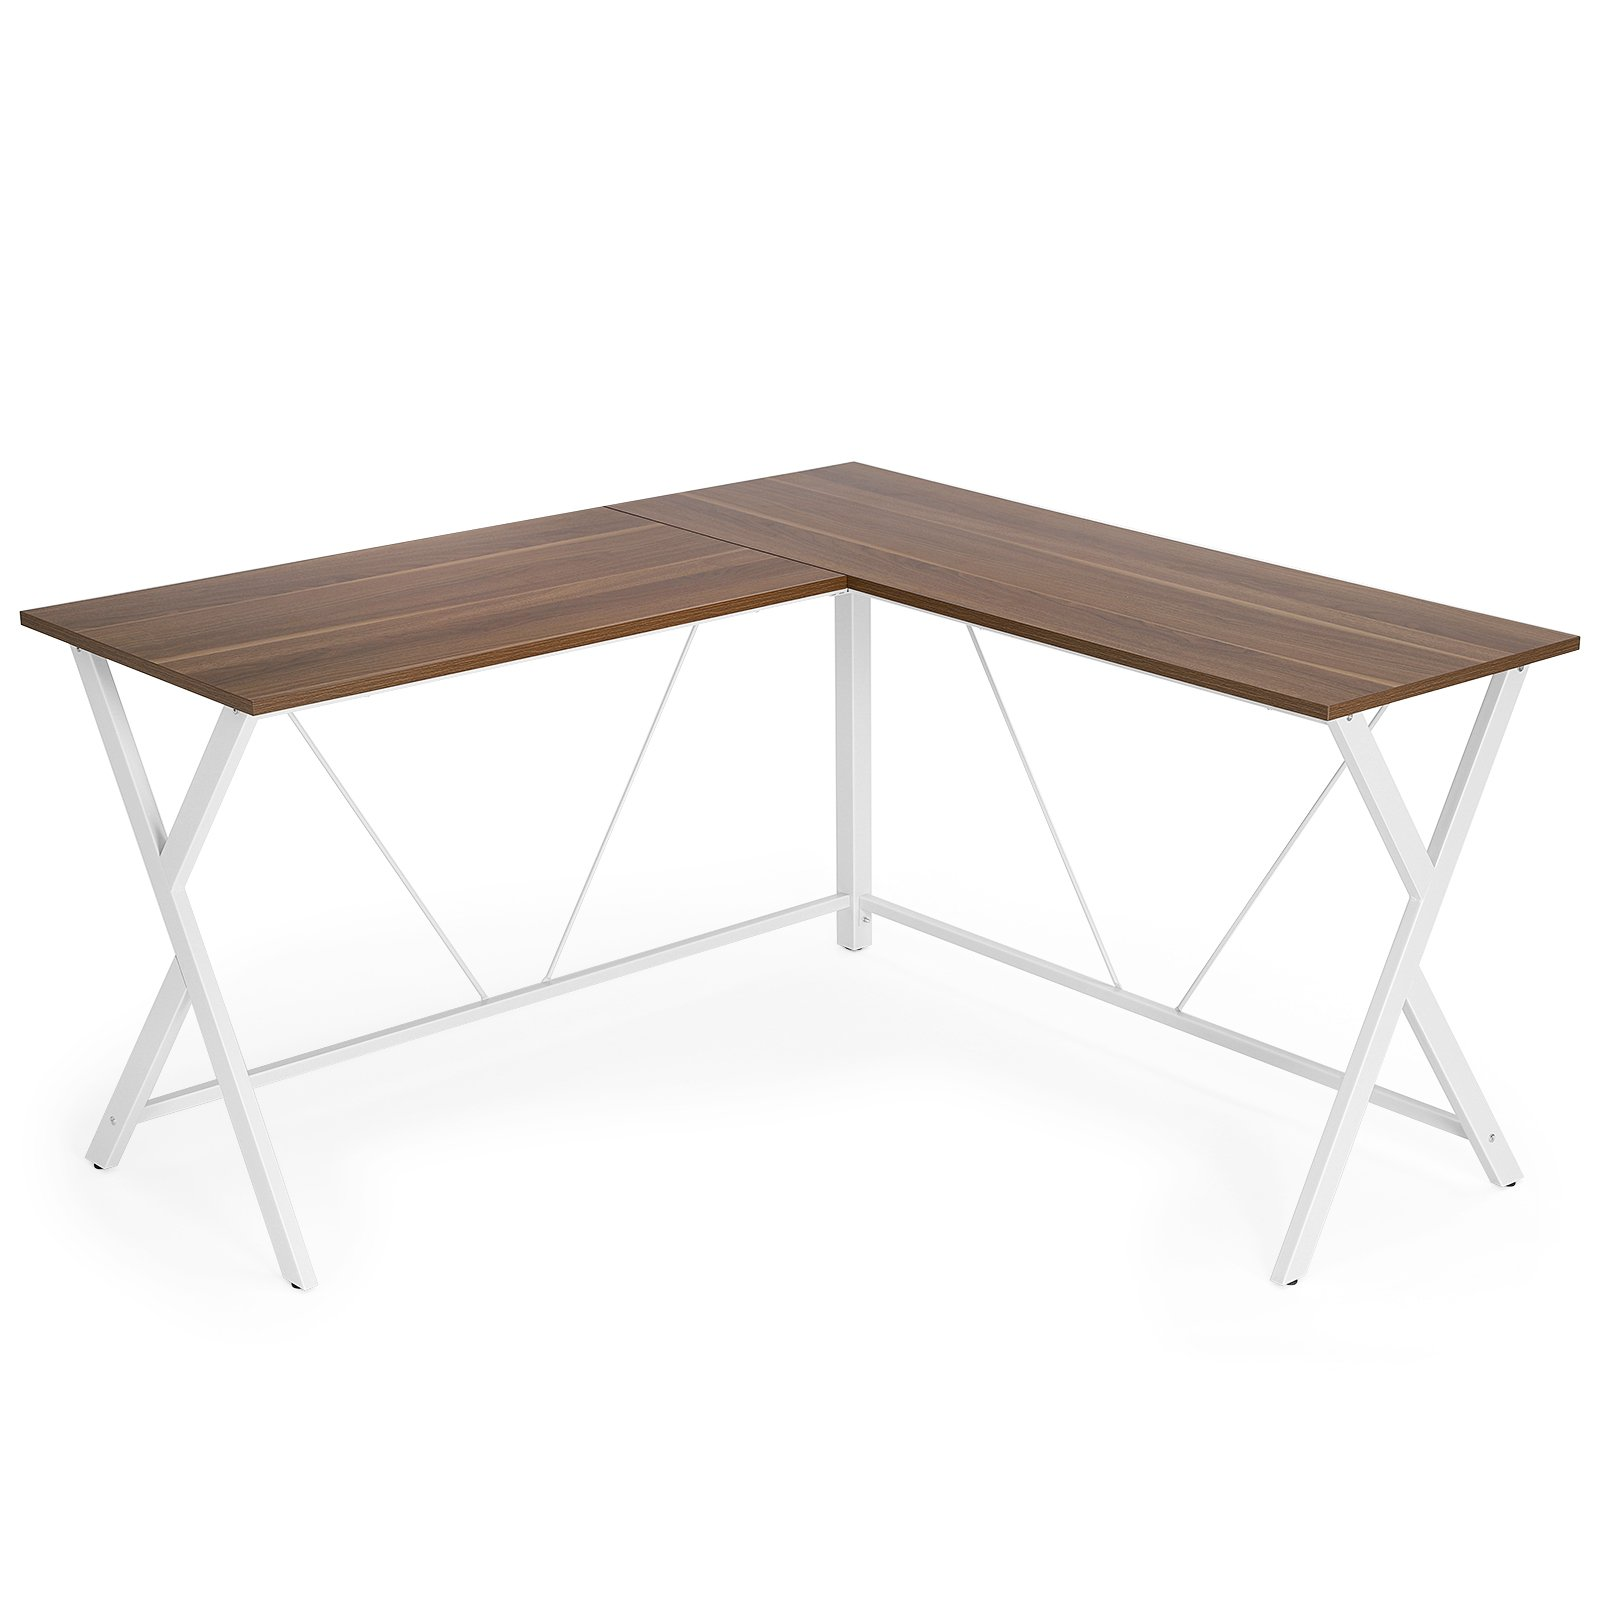 VASAGLE L-Shaped Computer Desk, Corner Office Writing Desk, Gaming Workstation, Sturdy Metal Frame, Easy Assembly, Tools and Instructions Included 57.1''x 51.1'' x 29.9'' ULWD70WH